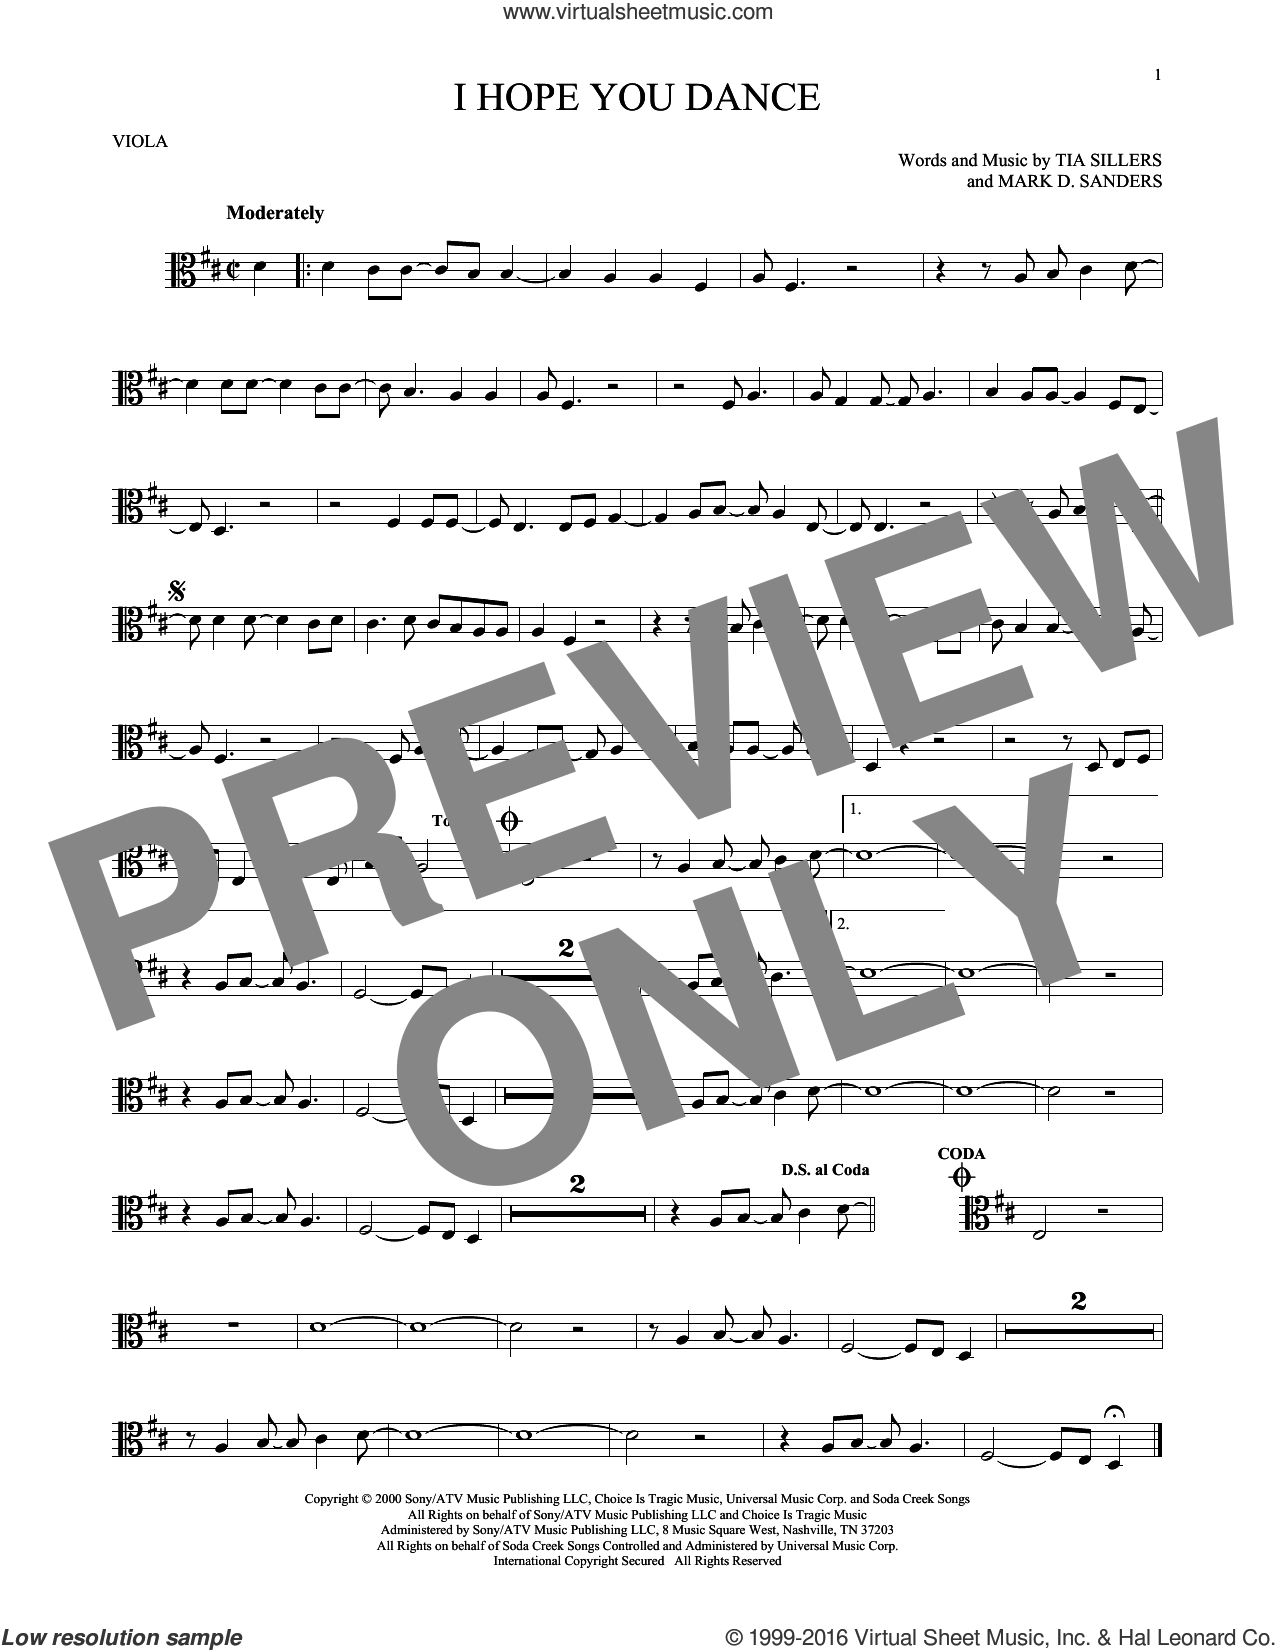 I Hope You Dance sheet music for viola solo by Lee Ann Womack with Sons of the Desert, Mark D. Sanders and Tia Sillers, intermediate skill level